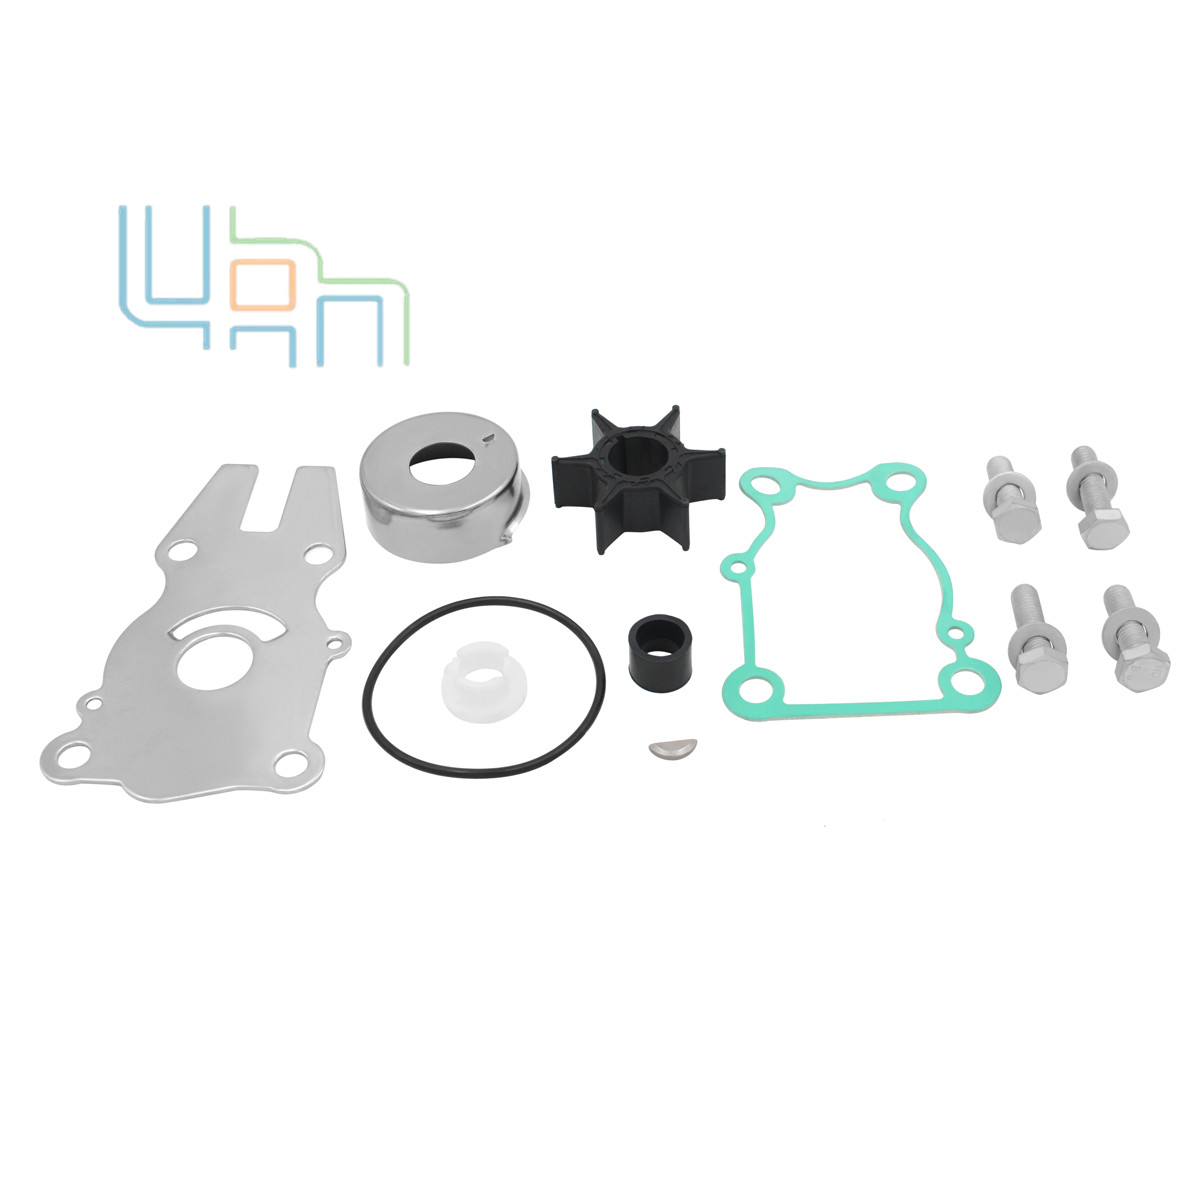 Water Pump Impeller Repair Kit For Yamaha F40/F50/F60hp Outboard 63D-W0078-01-00